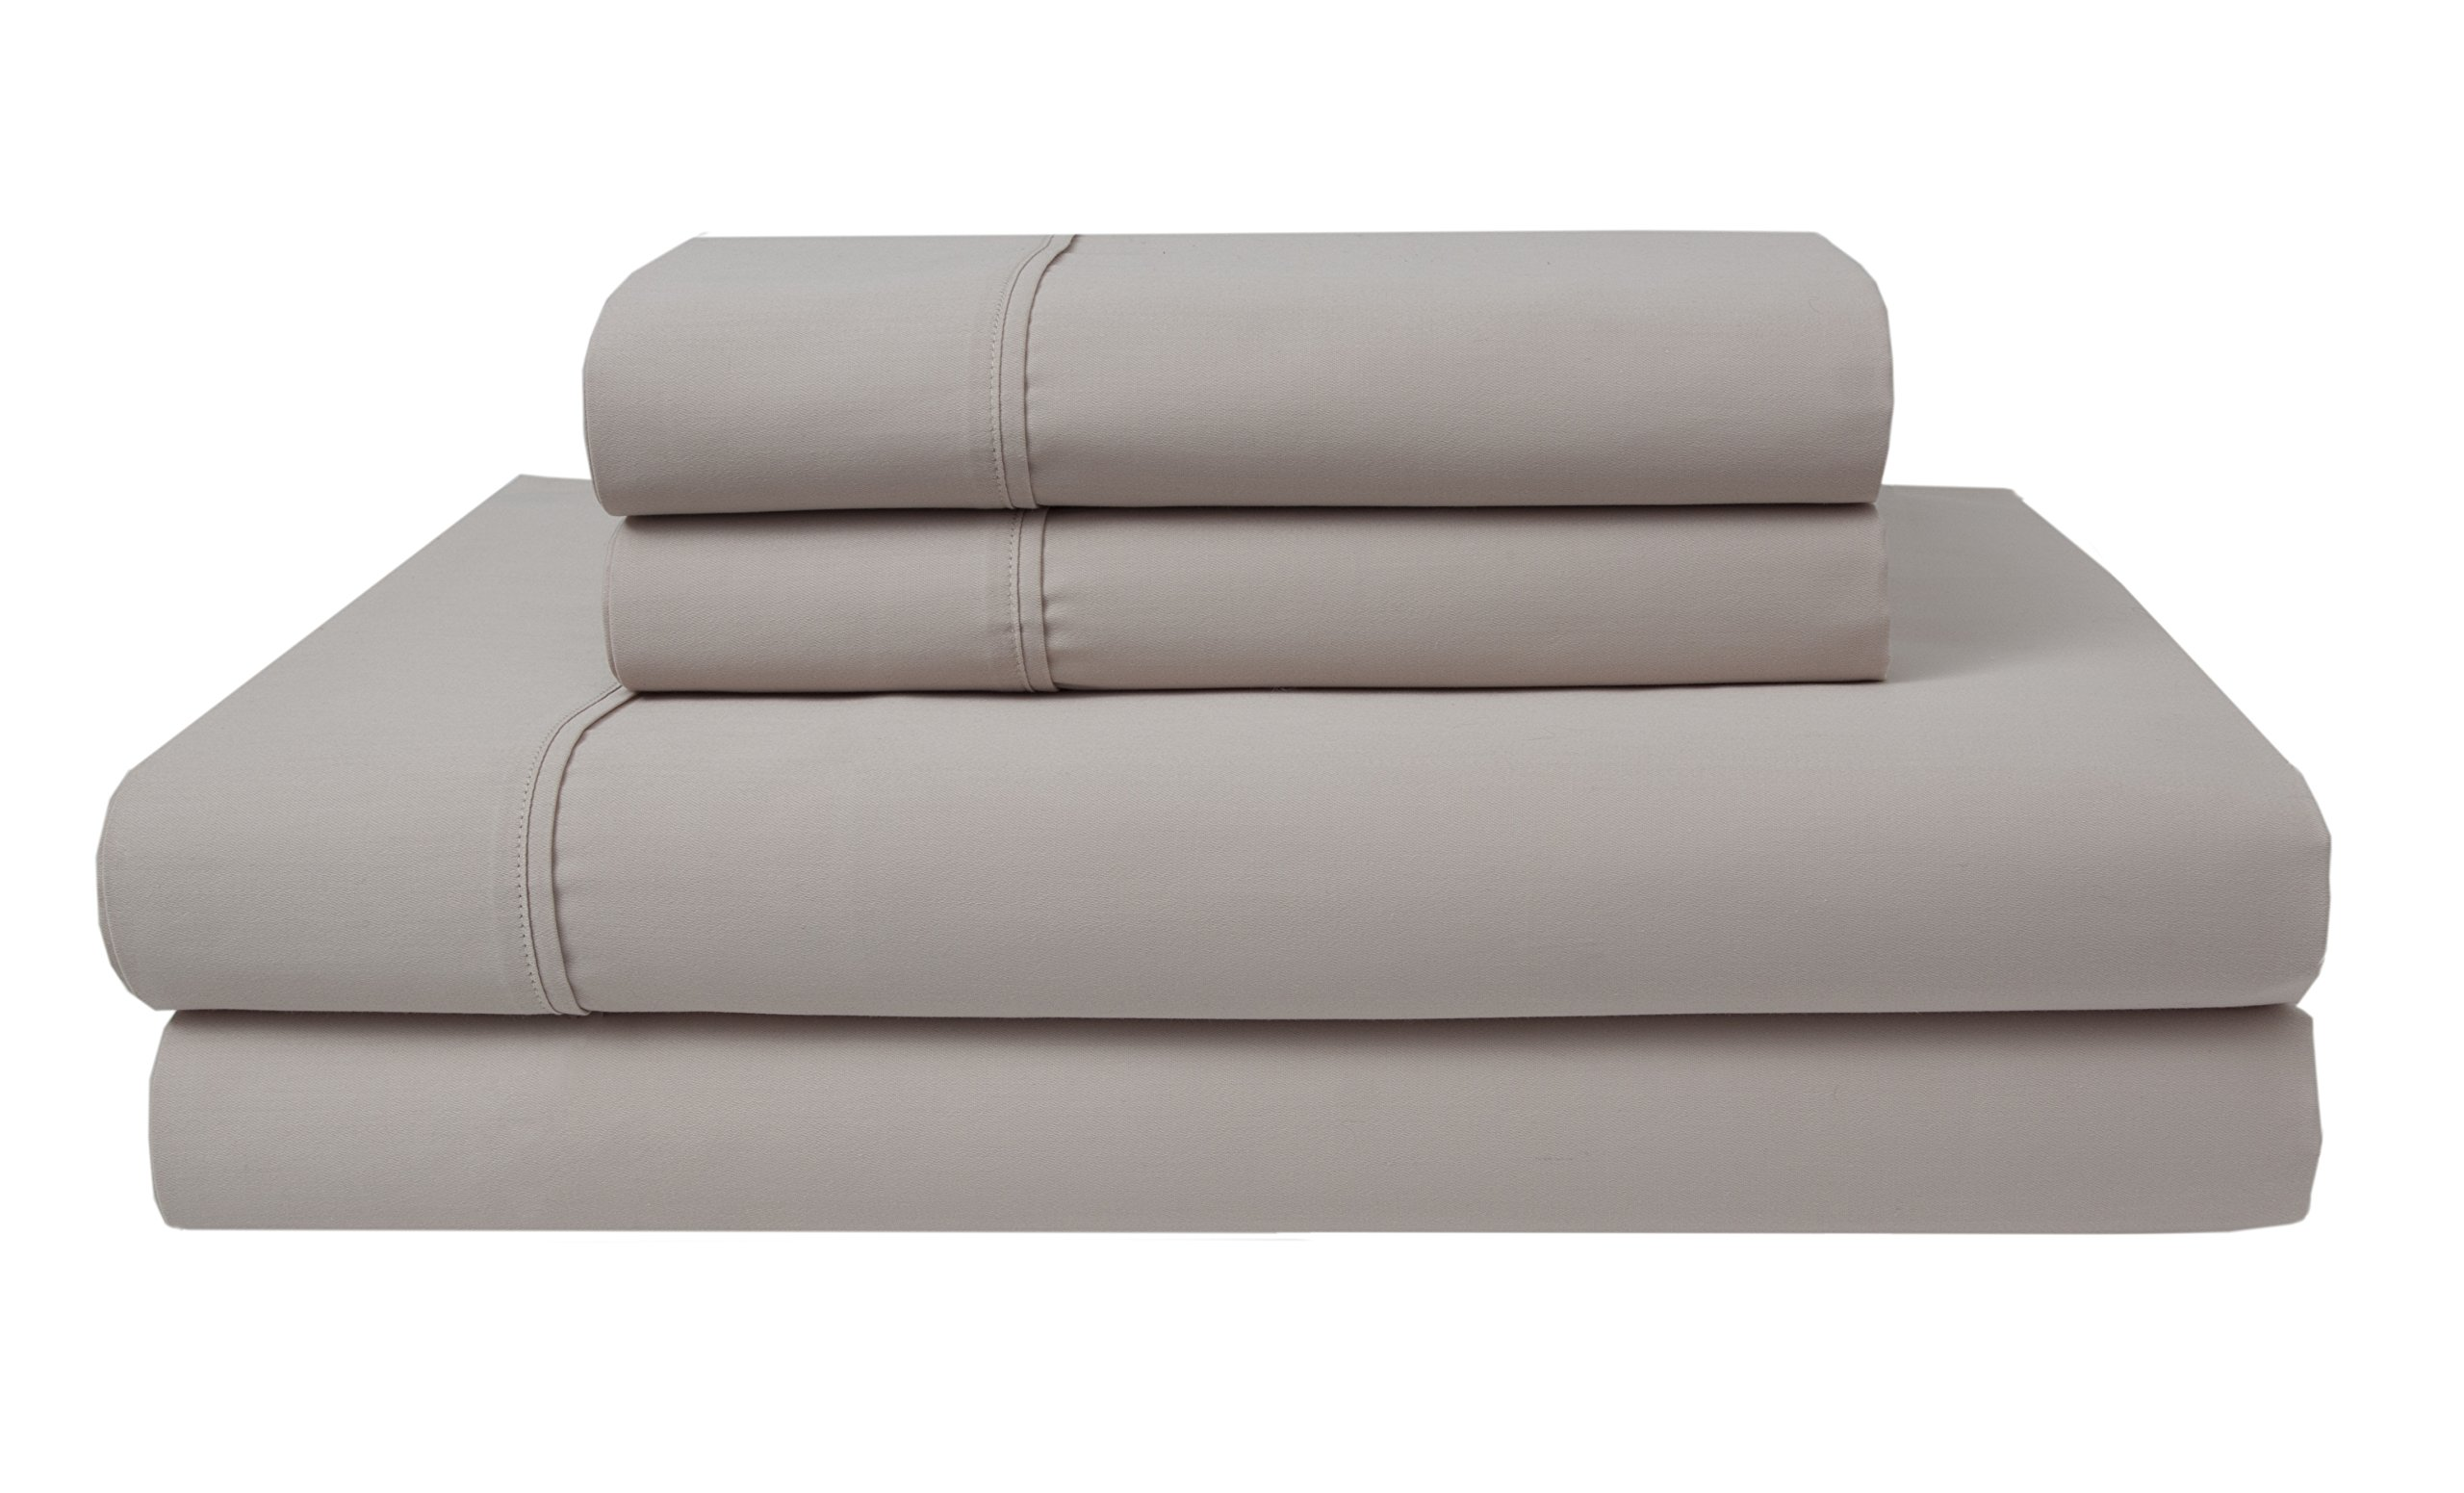 Elite Home Products 300 Thread Count Organic Cotton Deep-Pocketed Sheet Set, Queen, Oat